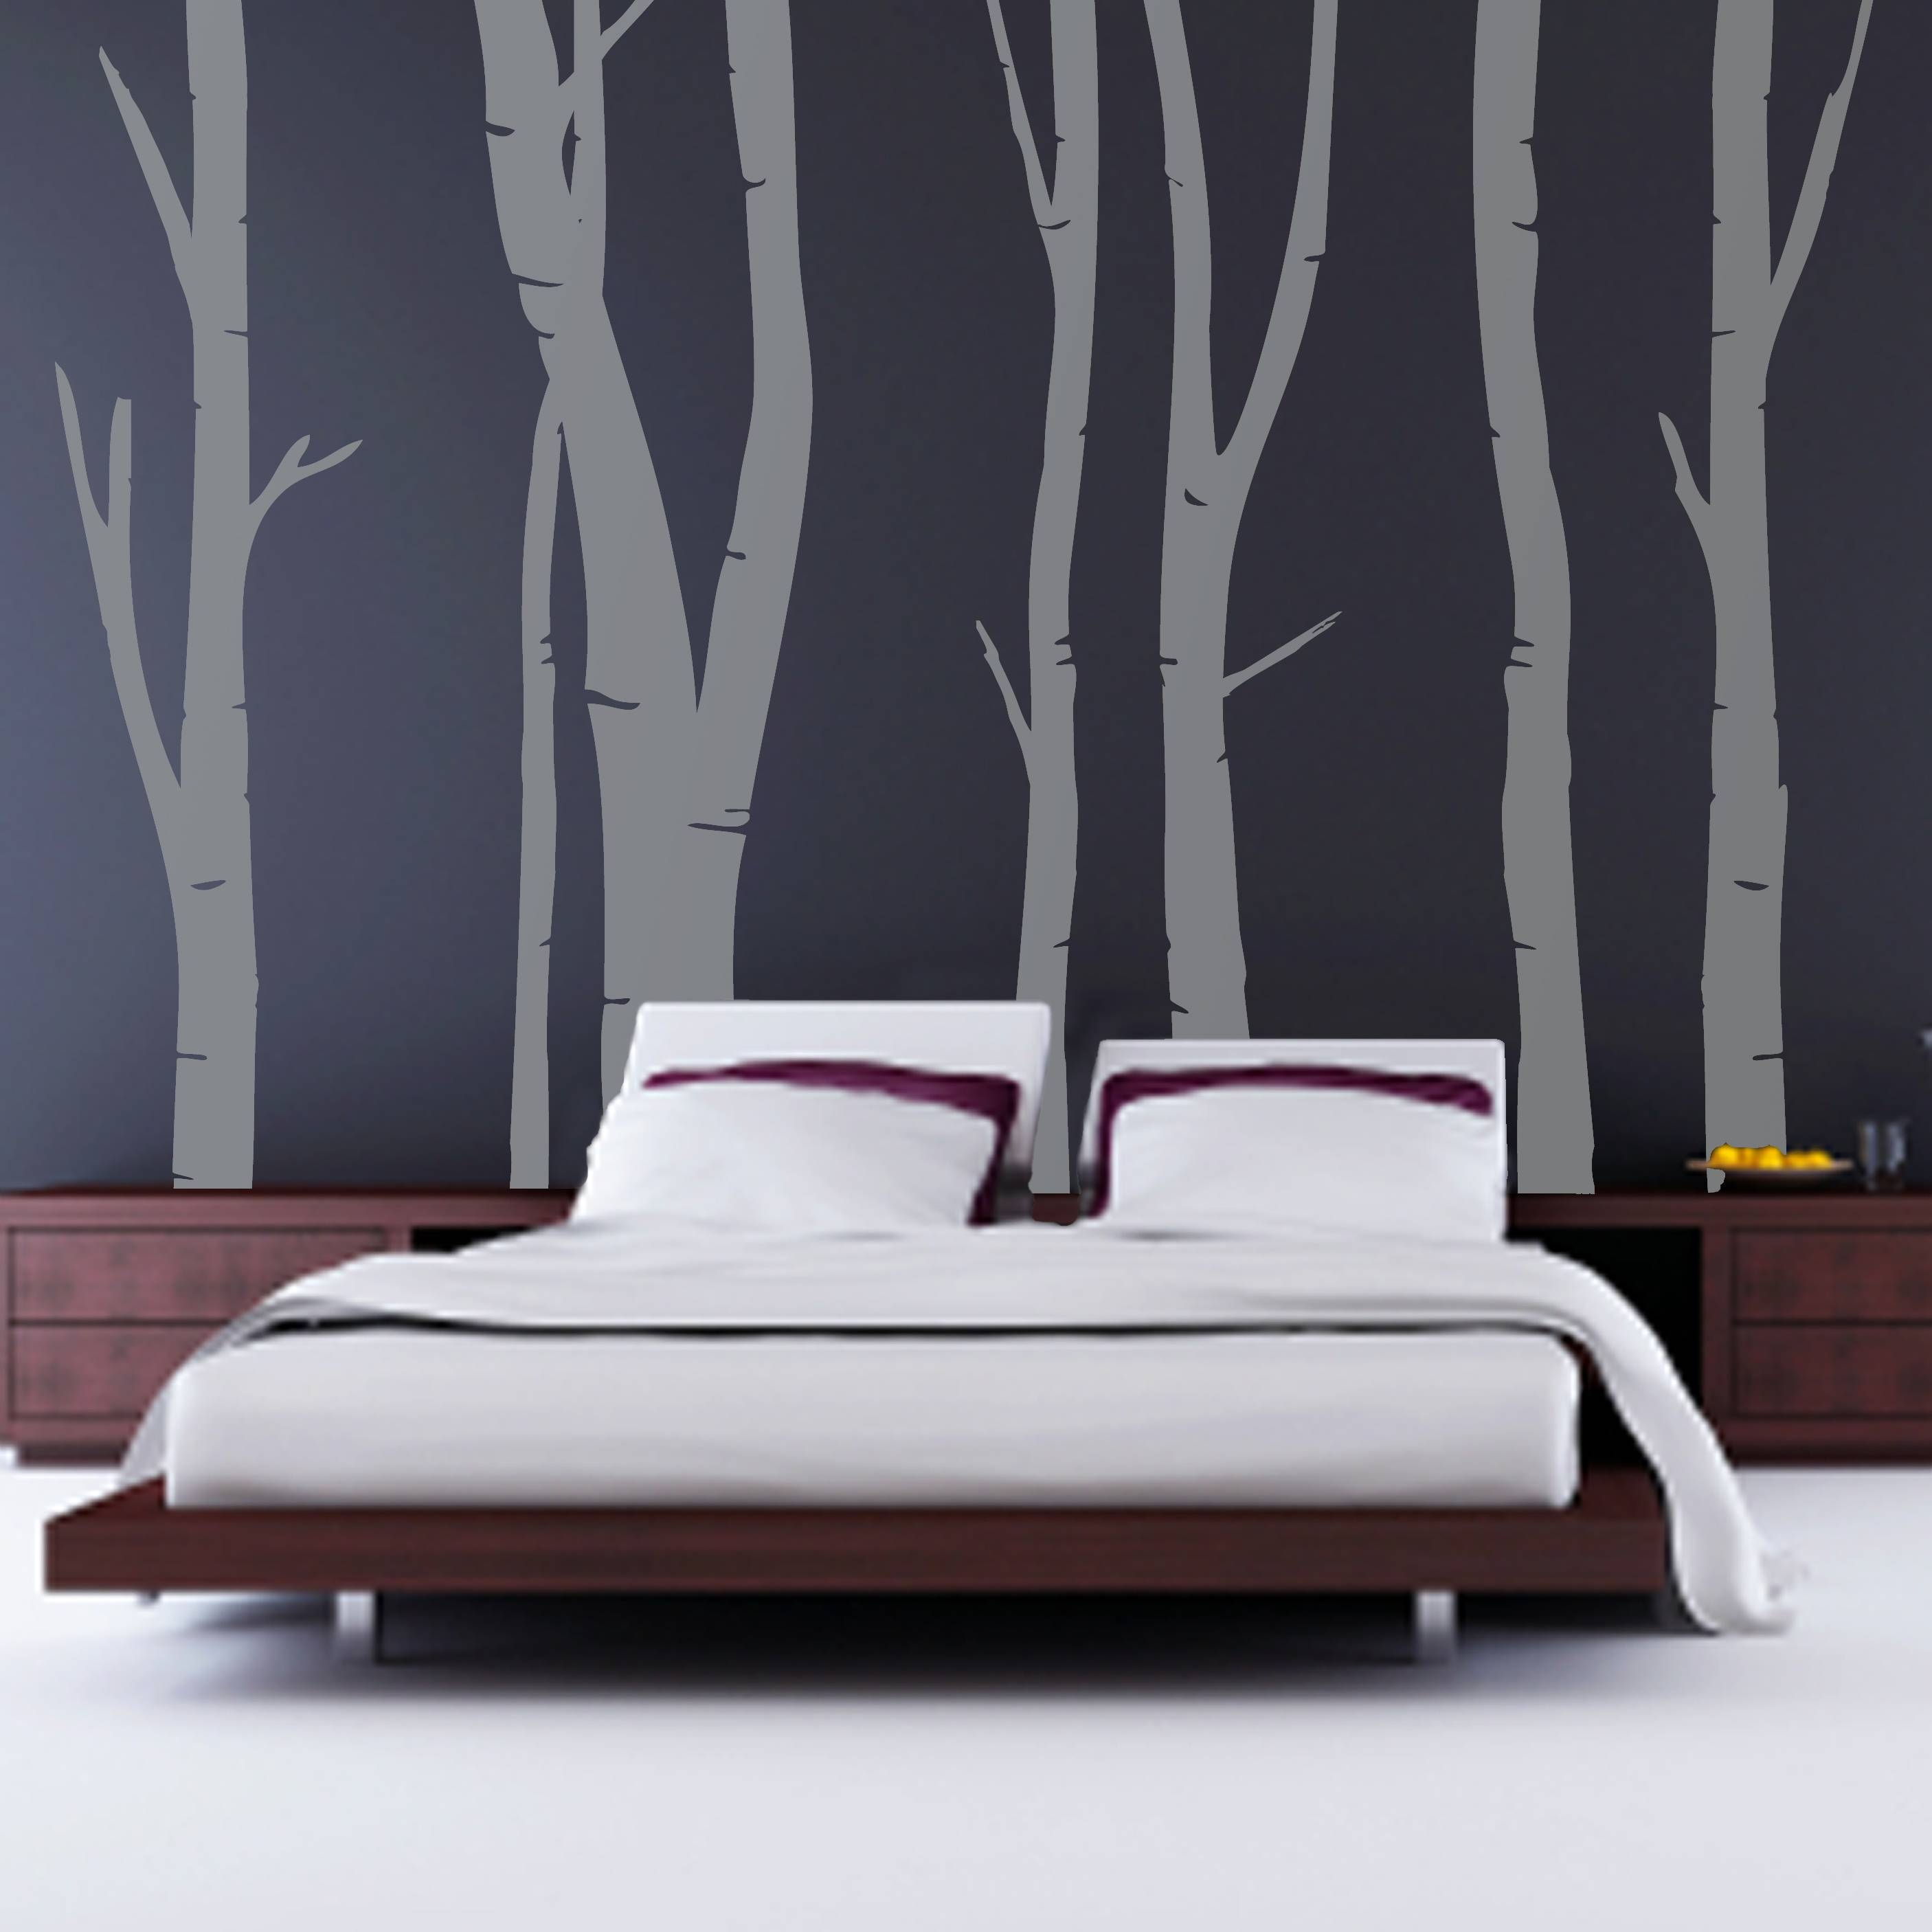 Fine Design Bedroom Wall Art Ideas Glamorous 15 Easy Diy Wall Art For Most Up To Date Glamorous Wall Art (View 20 of 30)